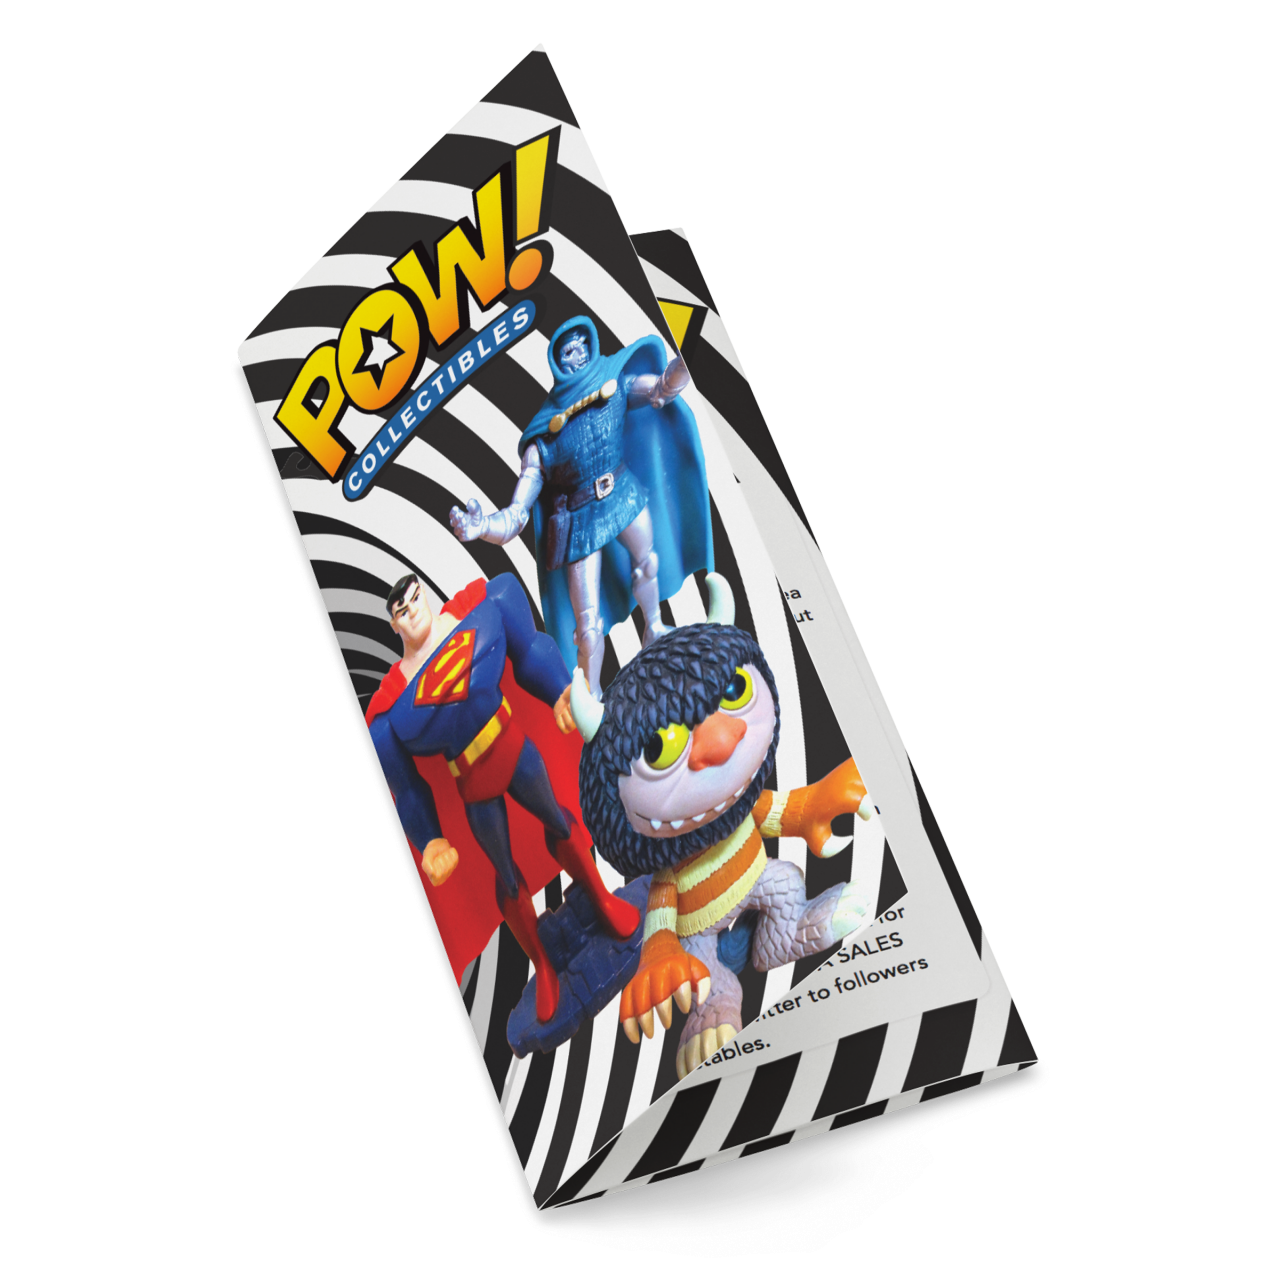 Image of Pow Collectibles logo on brochure